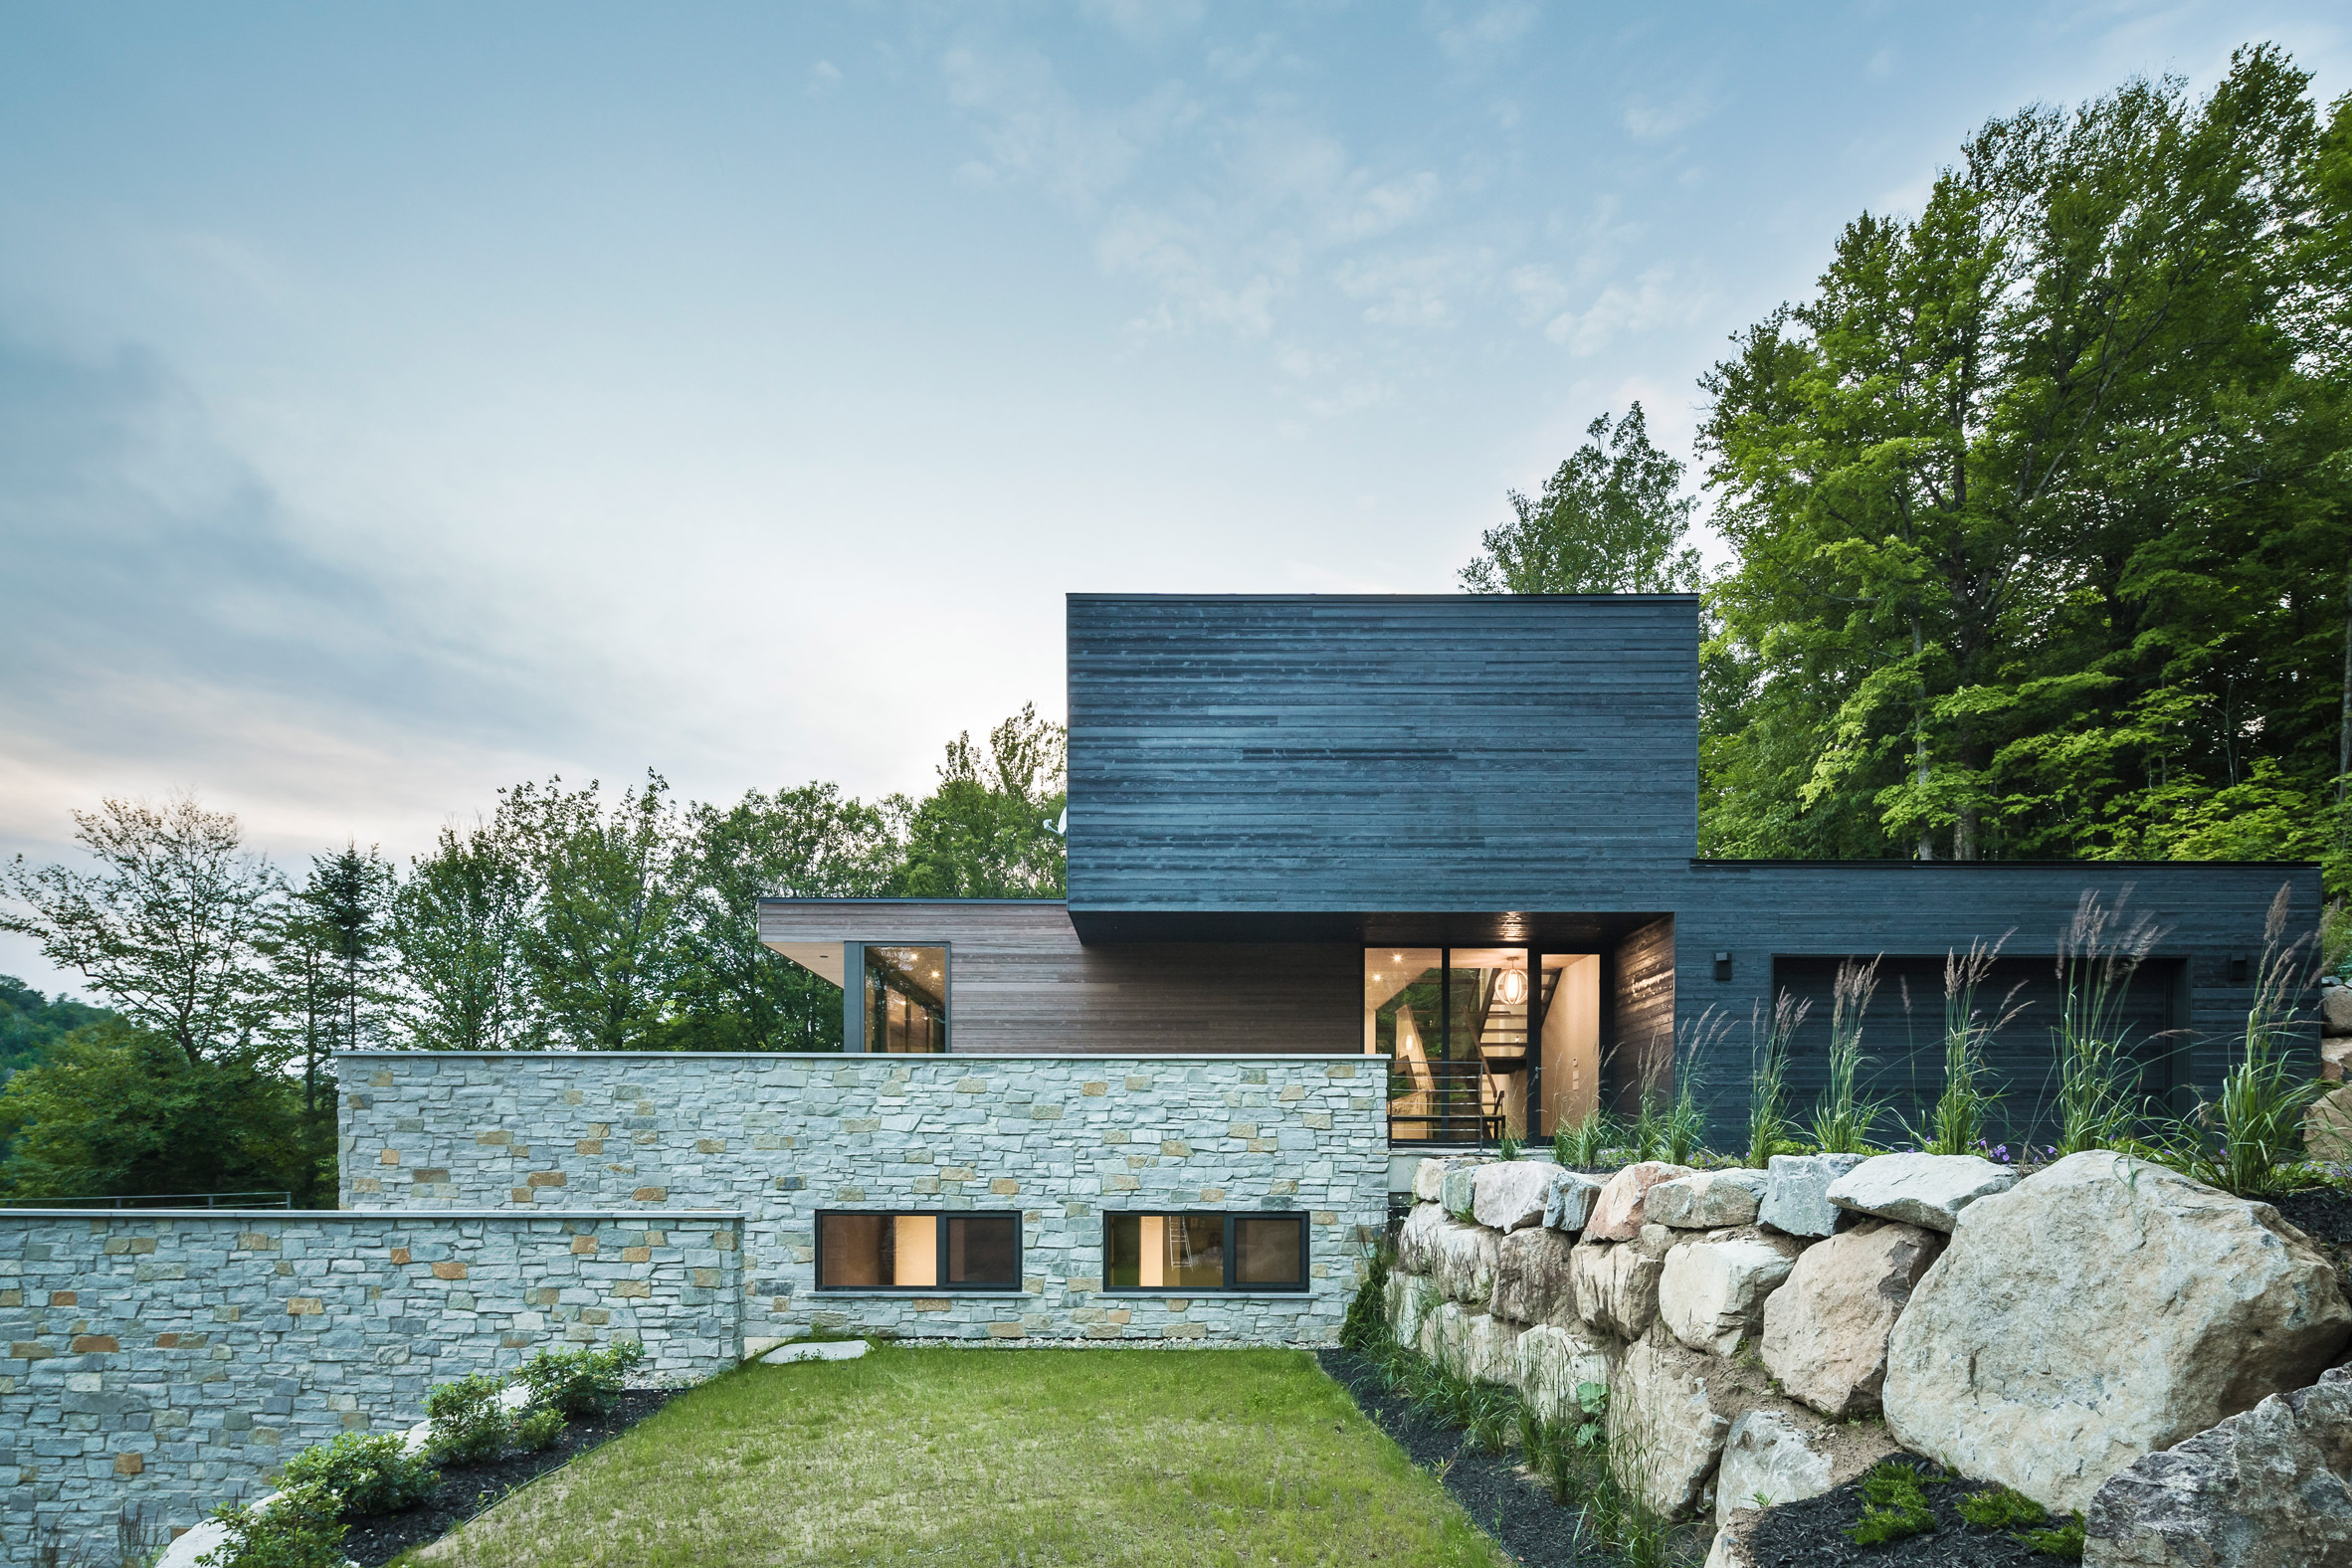 Quebec home by MU Architecture responds to steep and rocky topography